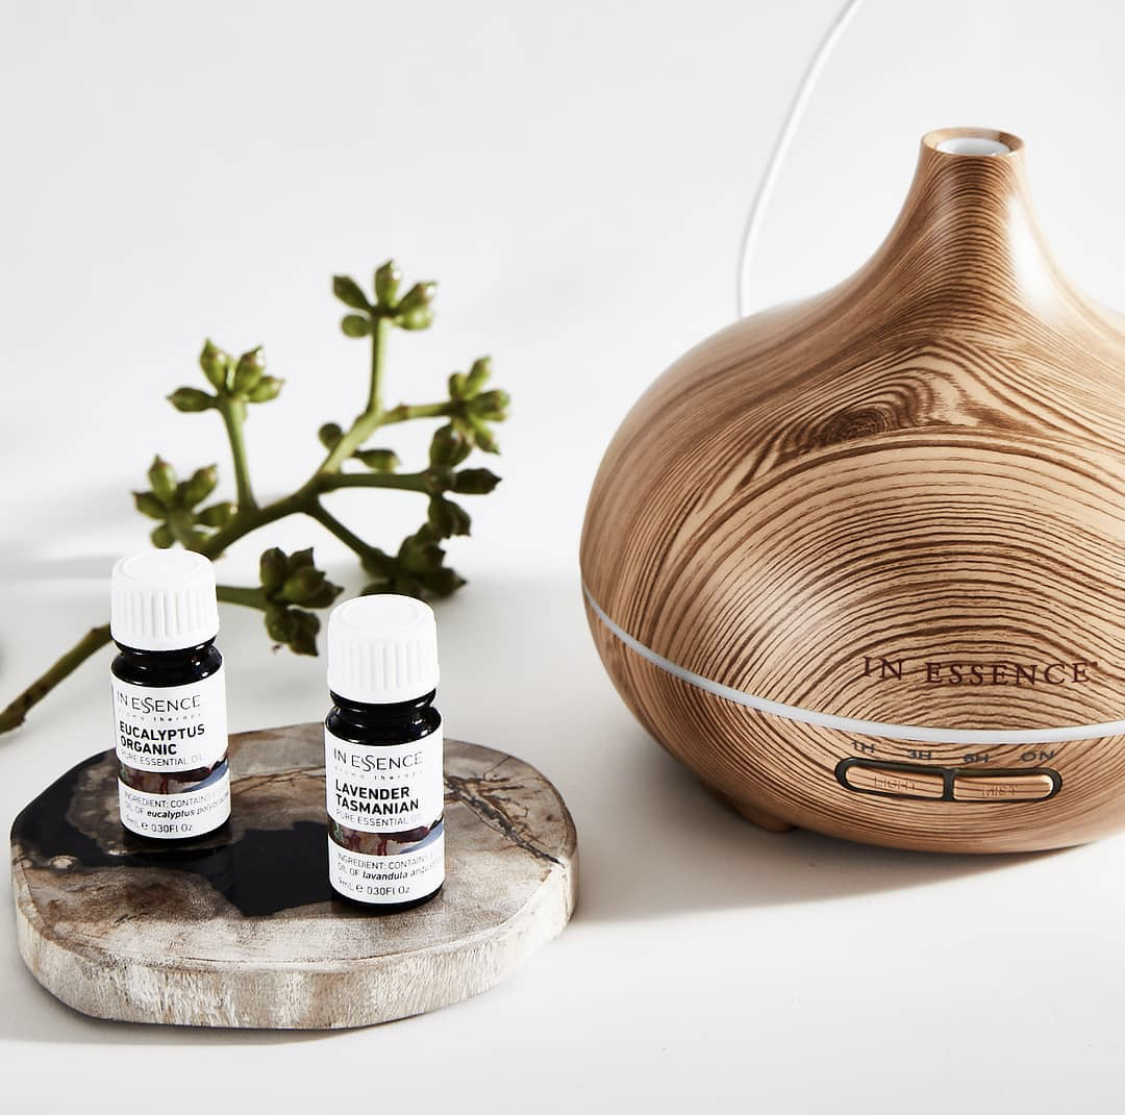 Release the purity and freshness of the Australian landscape by pairing this ultrasonic diffuser with any of our nature-inspired Australian pure essential oils blended, bottled and packaged right here in Australia.